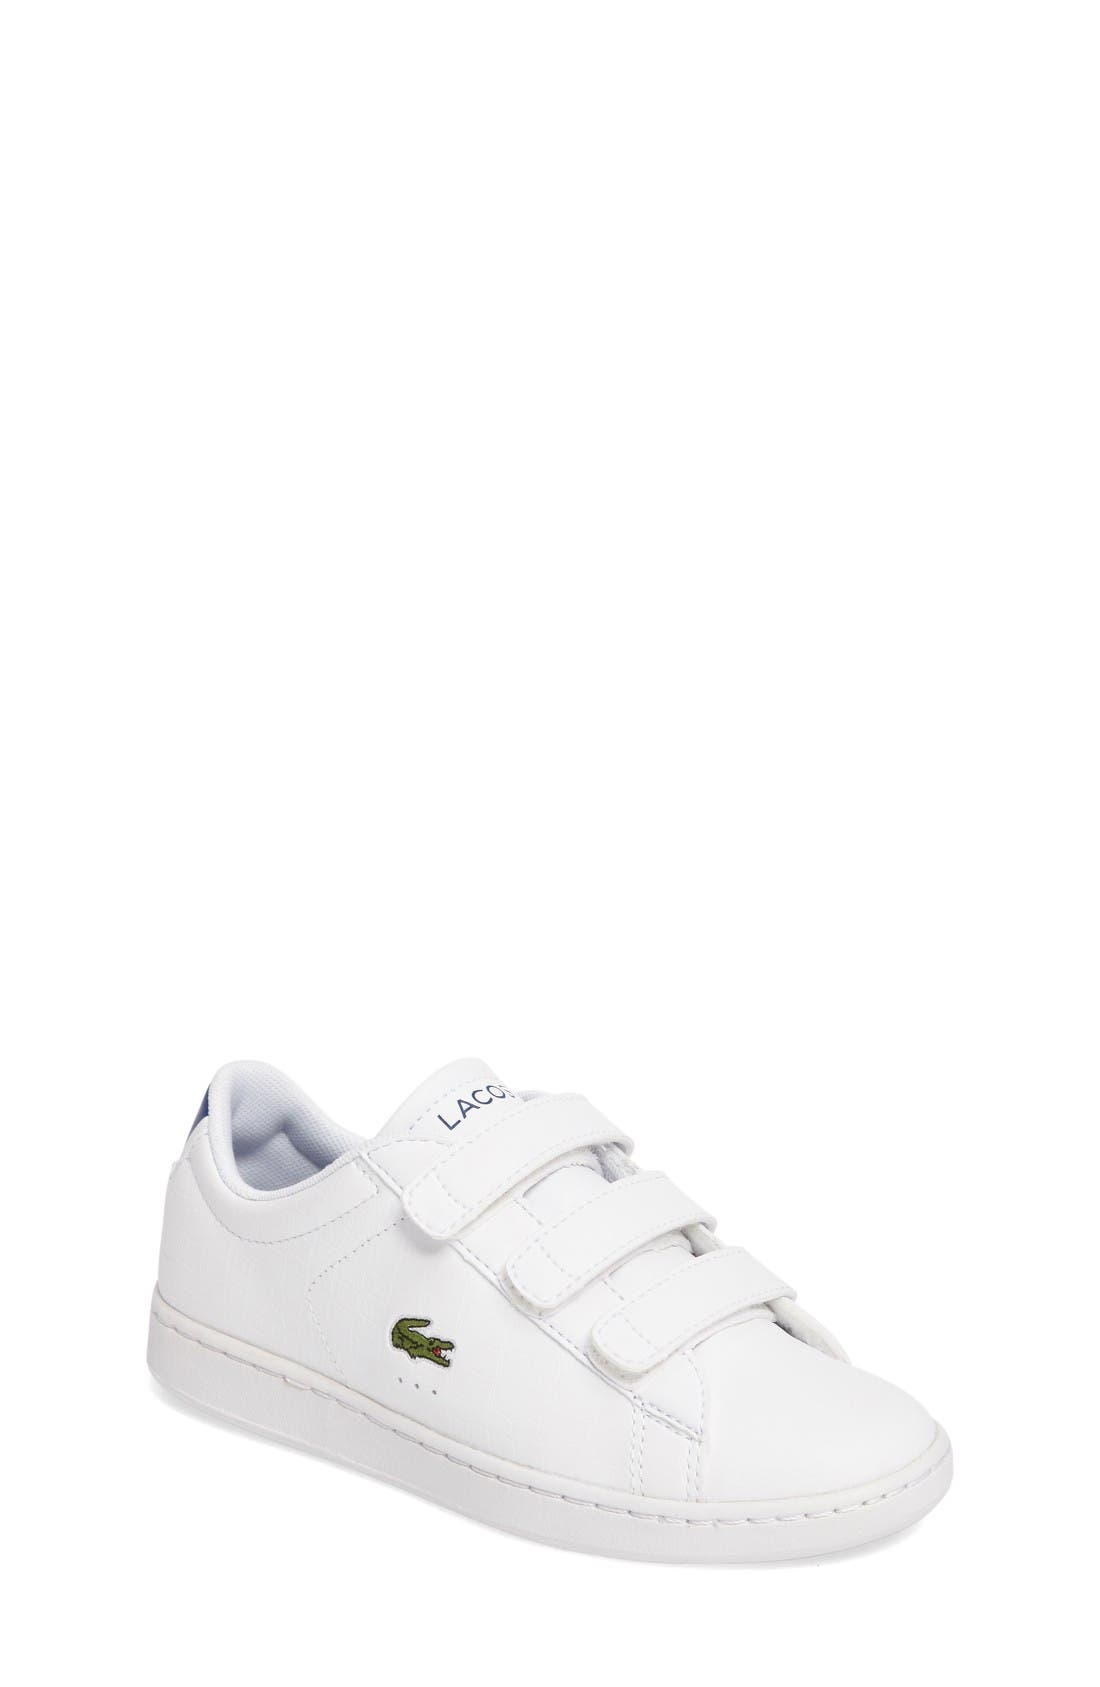 Alternate Image 1 Selected - Lacoste Carnaby EVO Sneaker (Baby, Walker, Toddler & Little Kid)